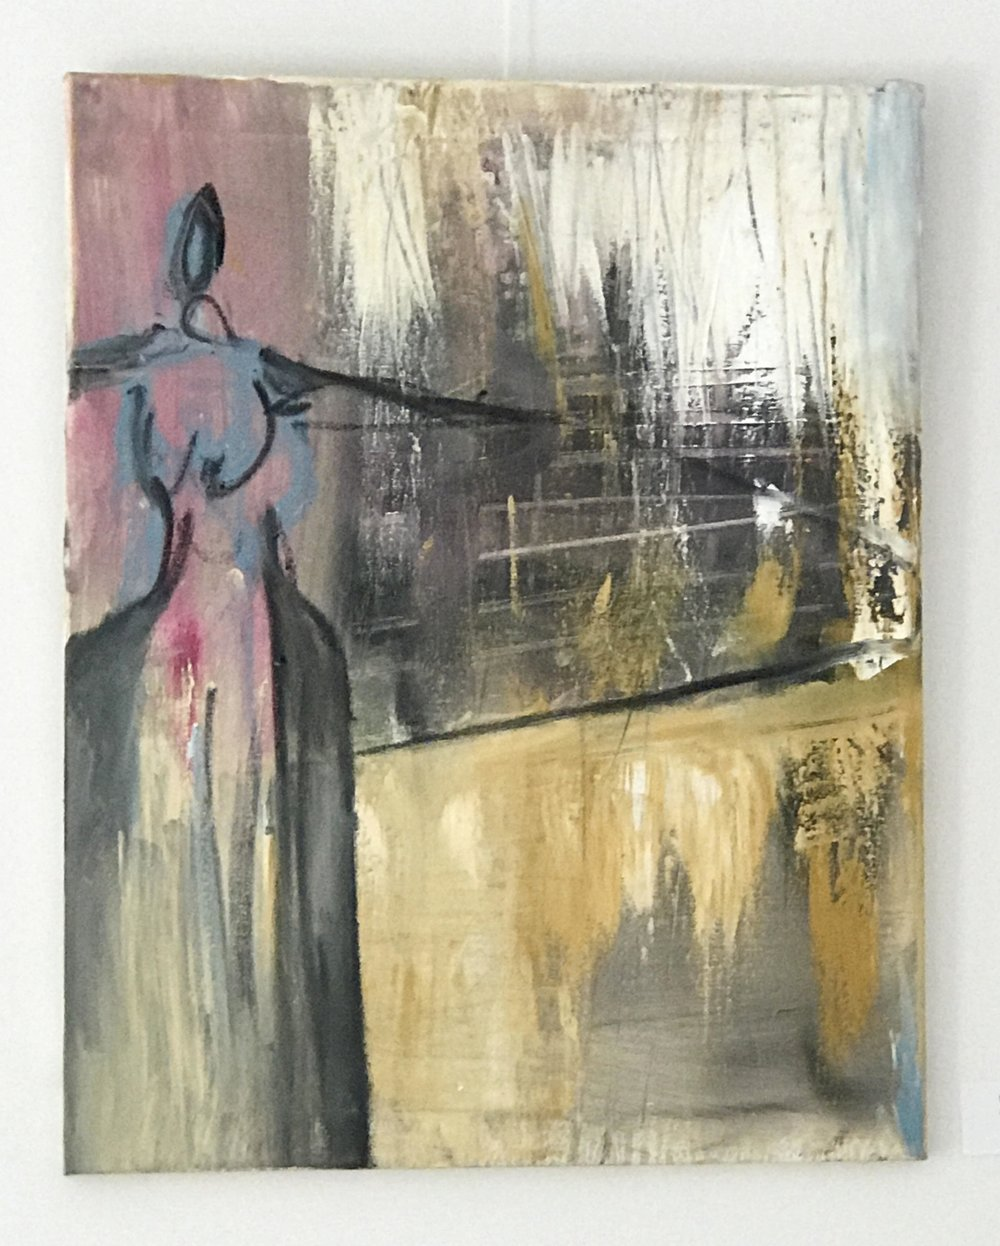 abstract expressionist painting of figure